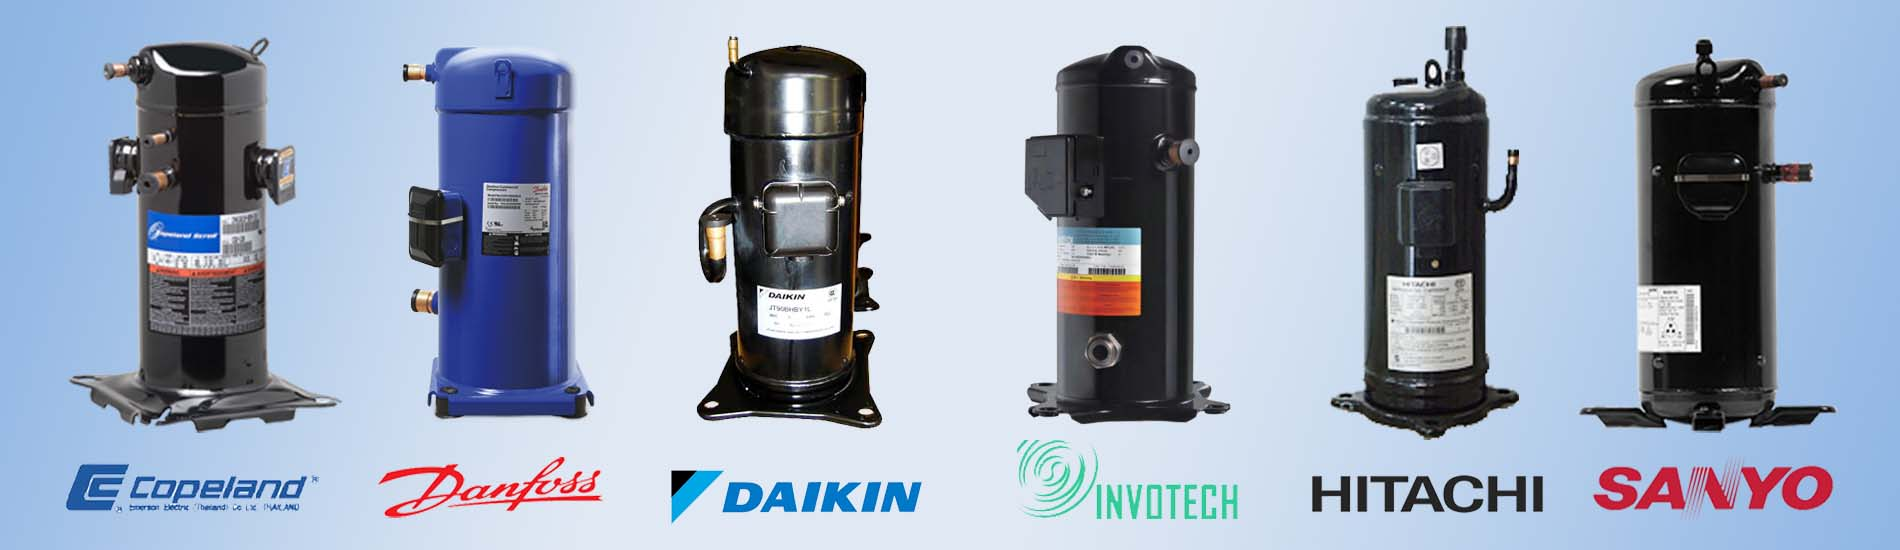 Danfoss InvoTech Copeland Panasonic SANYO Daikin Hitachi Scroll Compressor